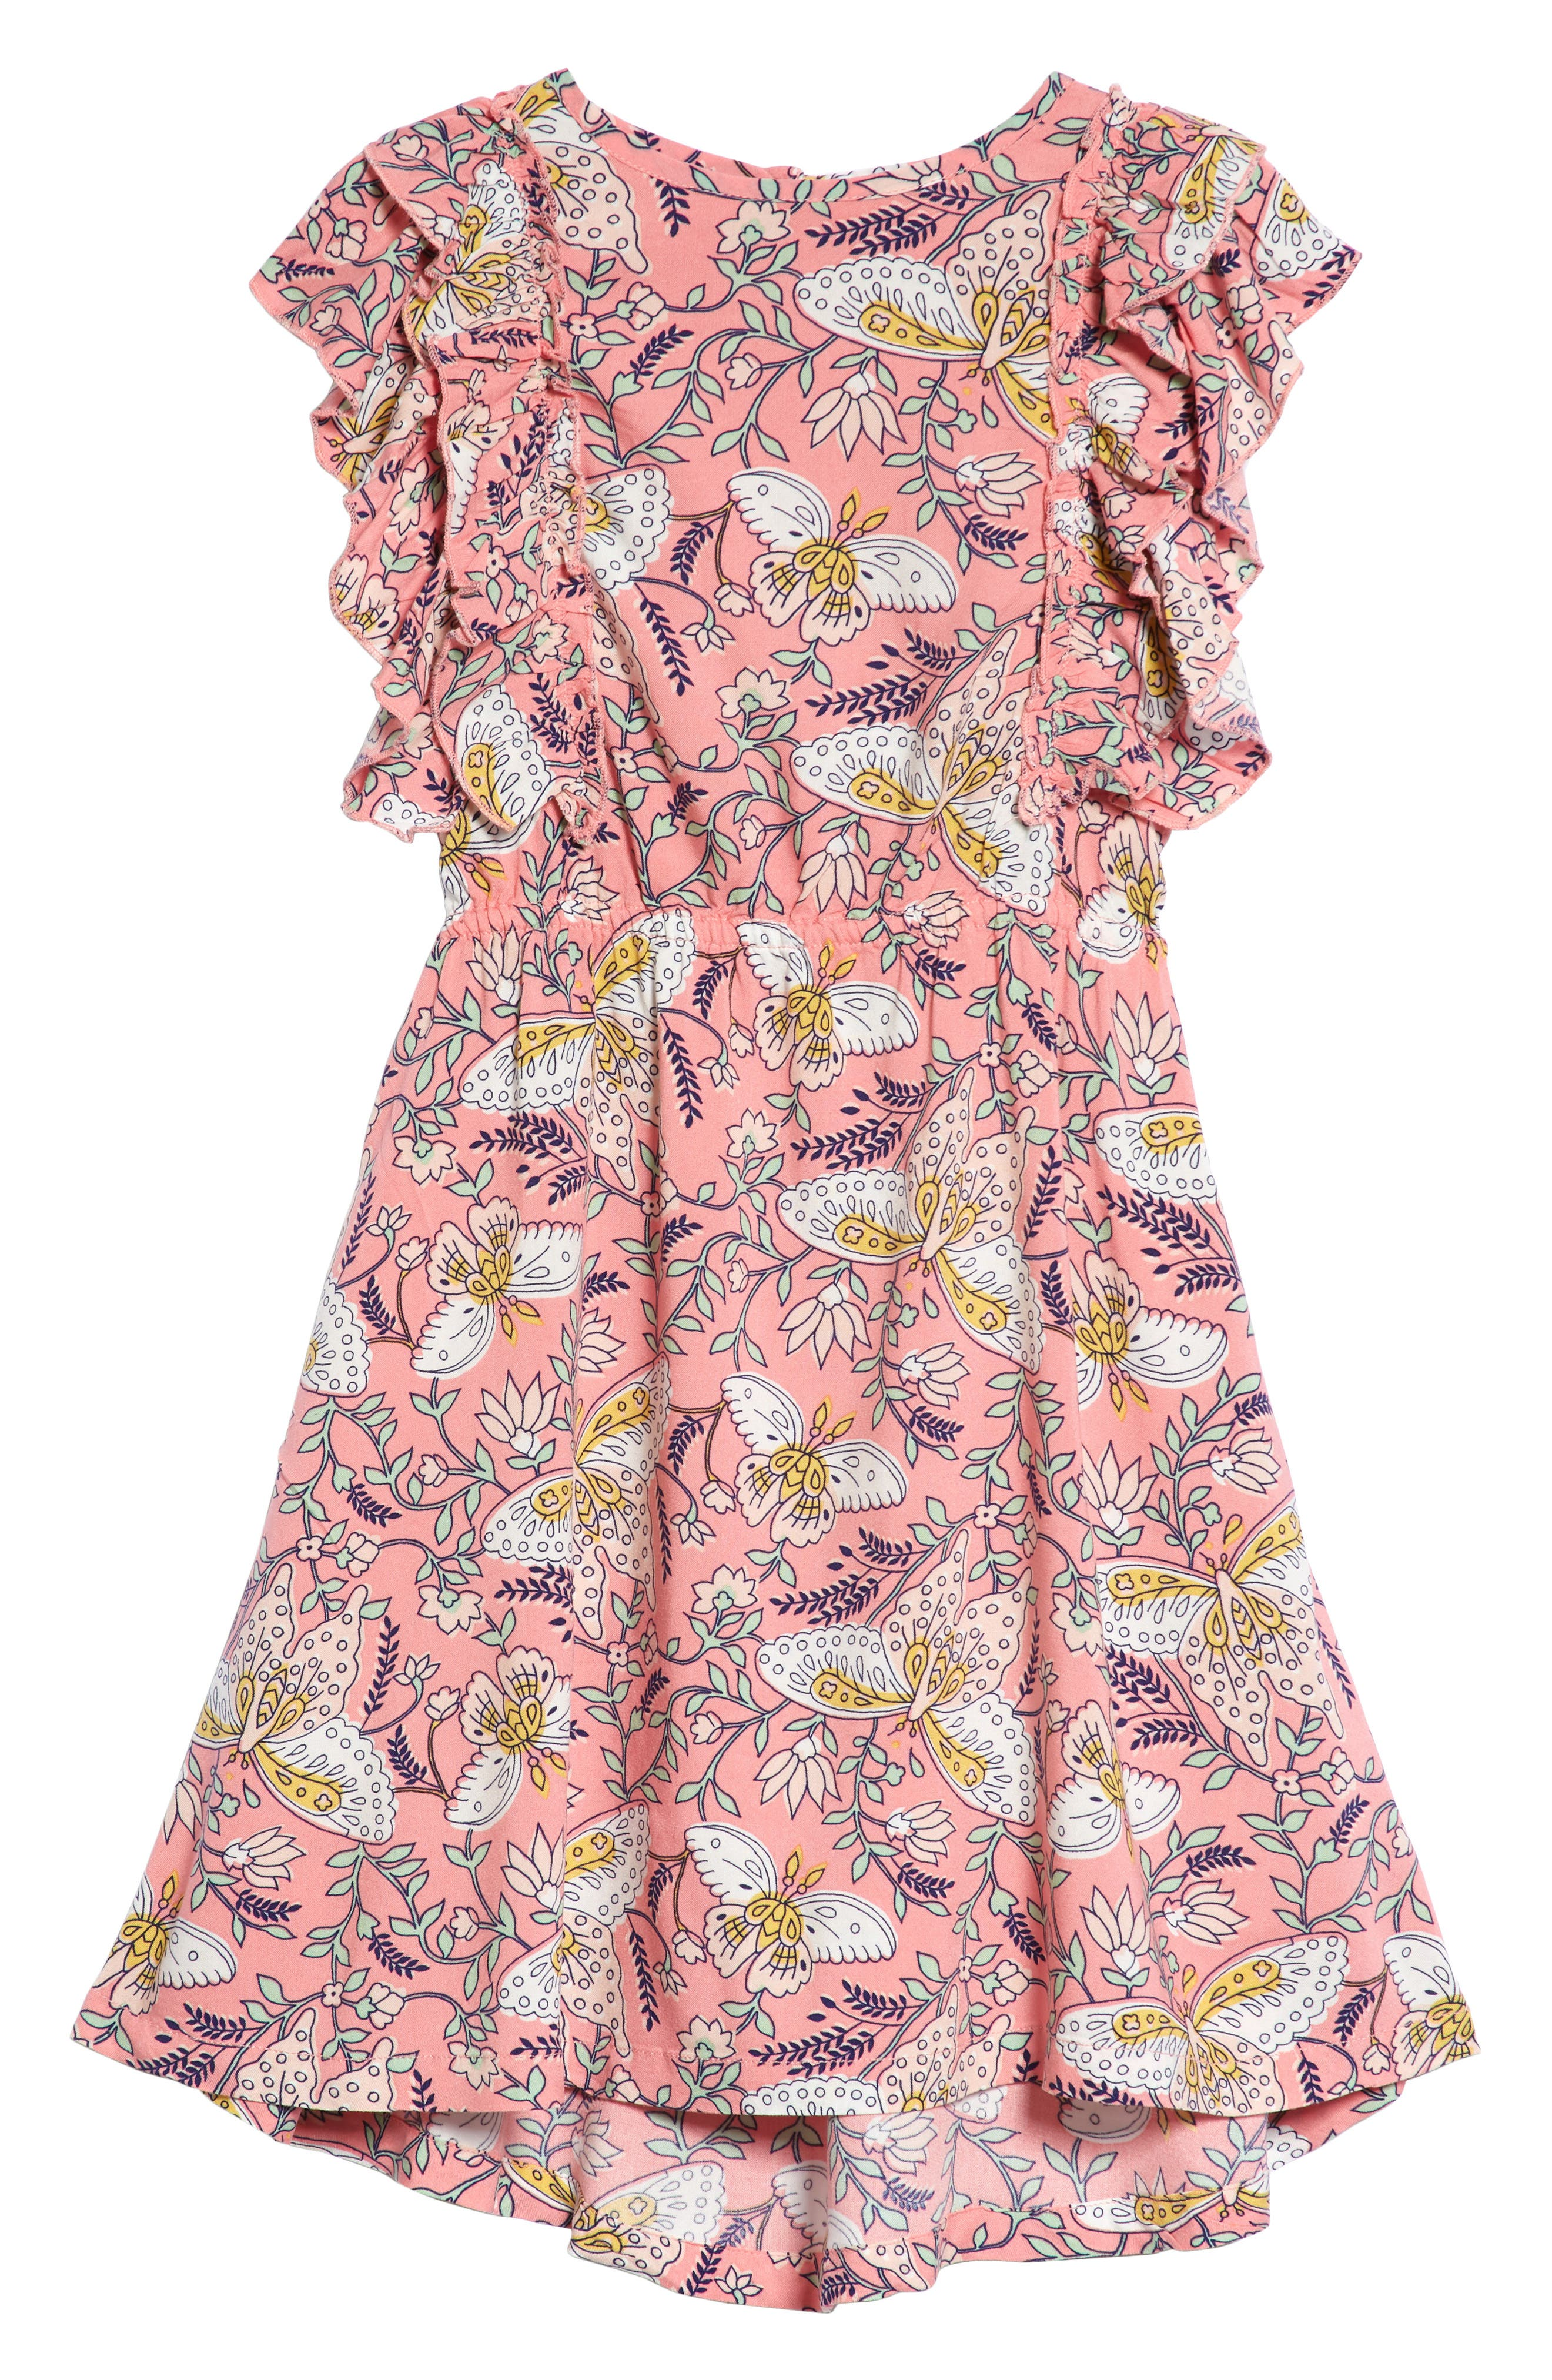 Print Ruffle Dress,                             Main thumbnail 1, color,                             660